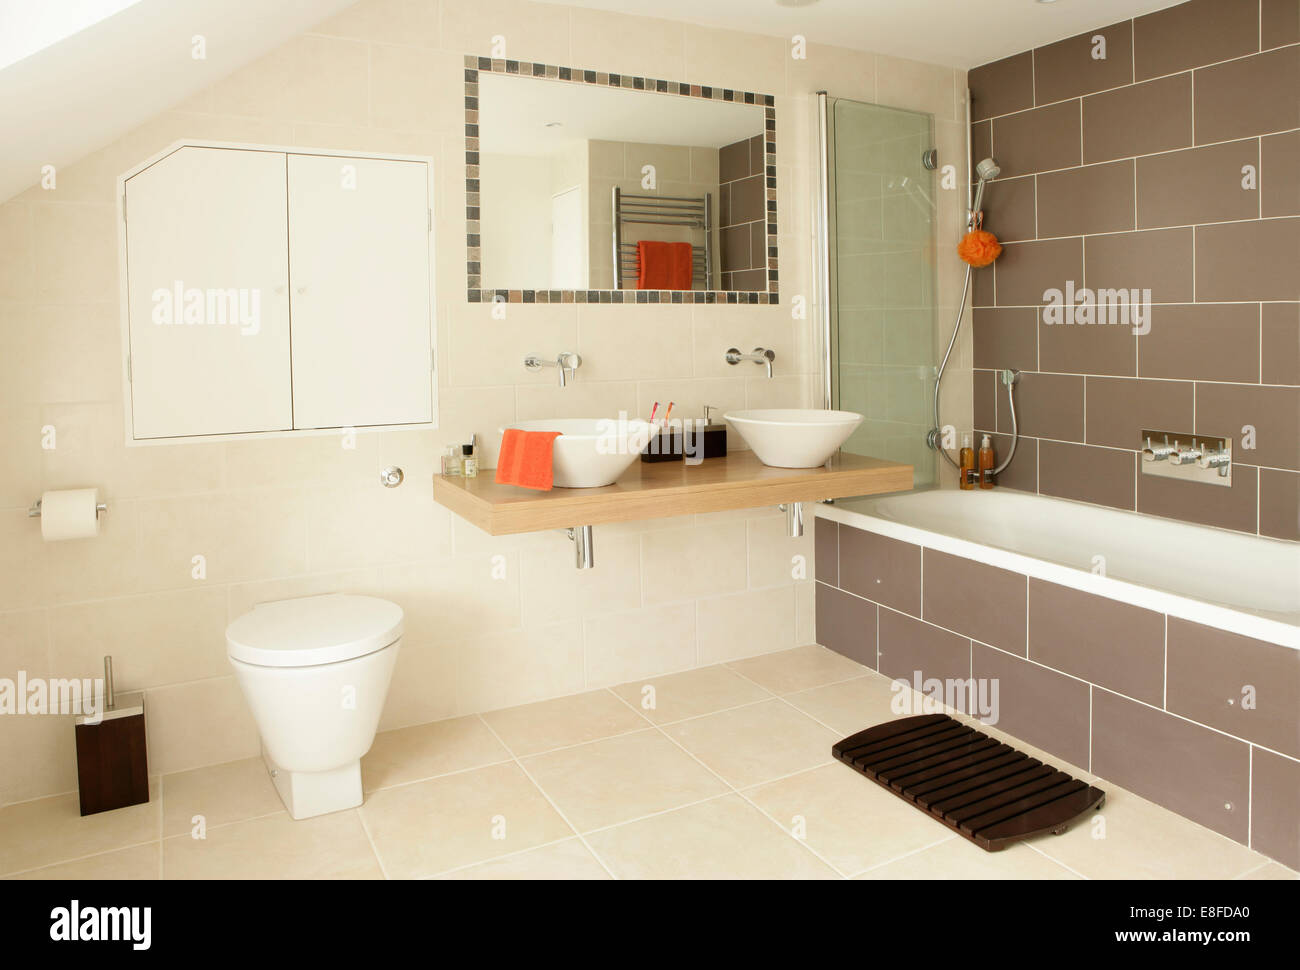 Tiled Framed Mirror Above White Bowl Basins On Wooden Vanity Shelf In Stock Photo Alamy